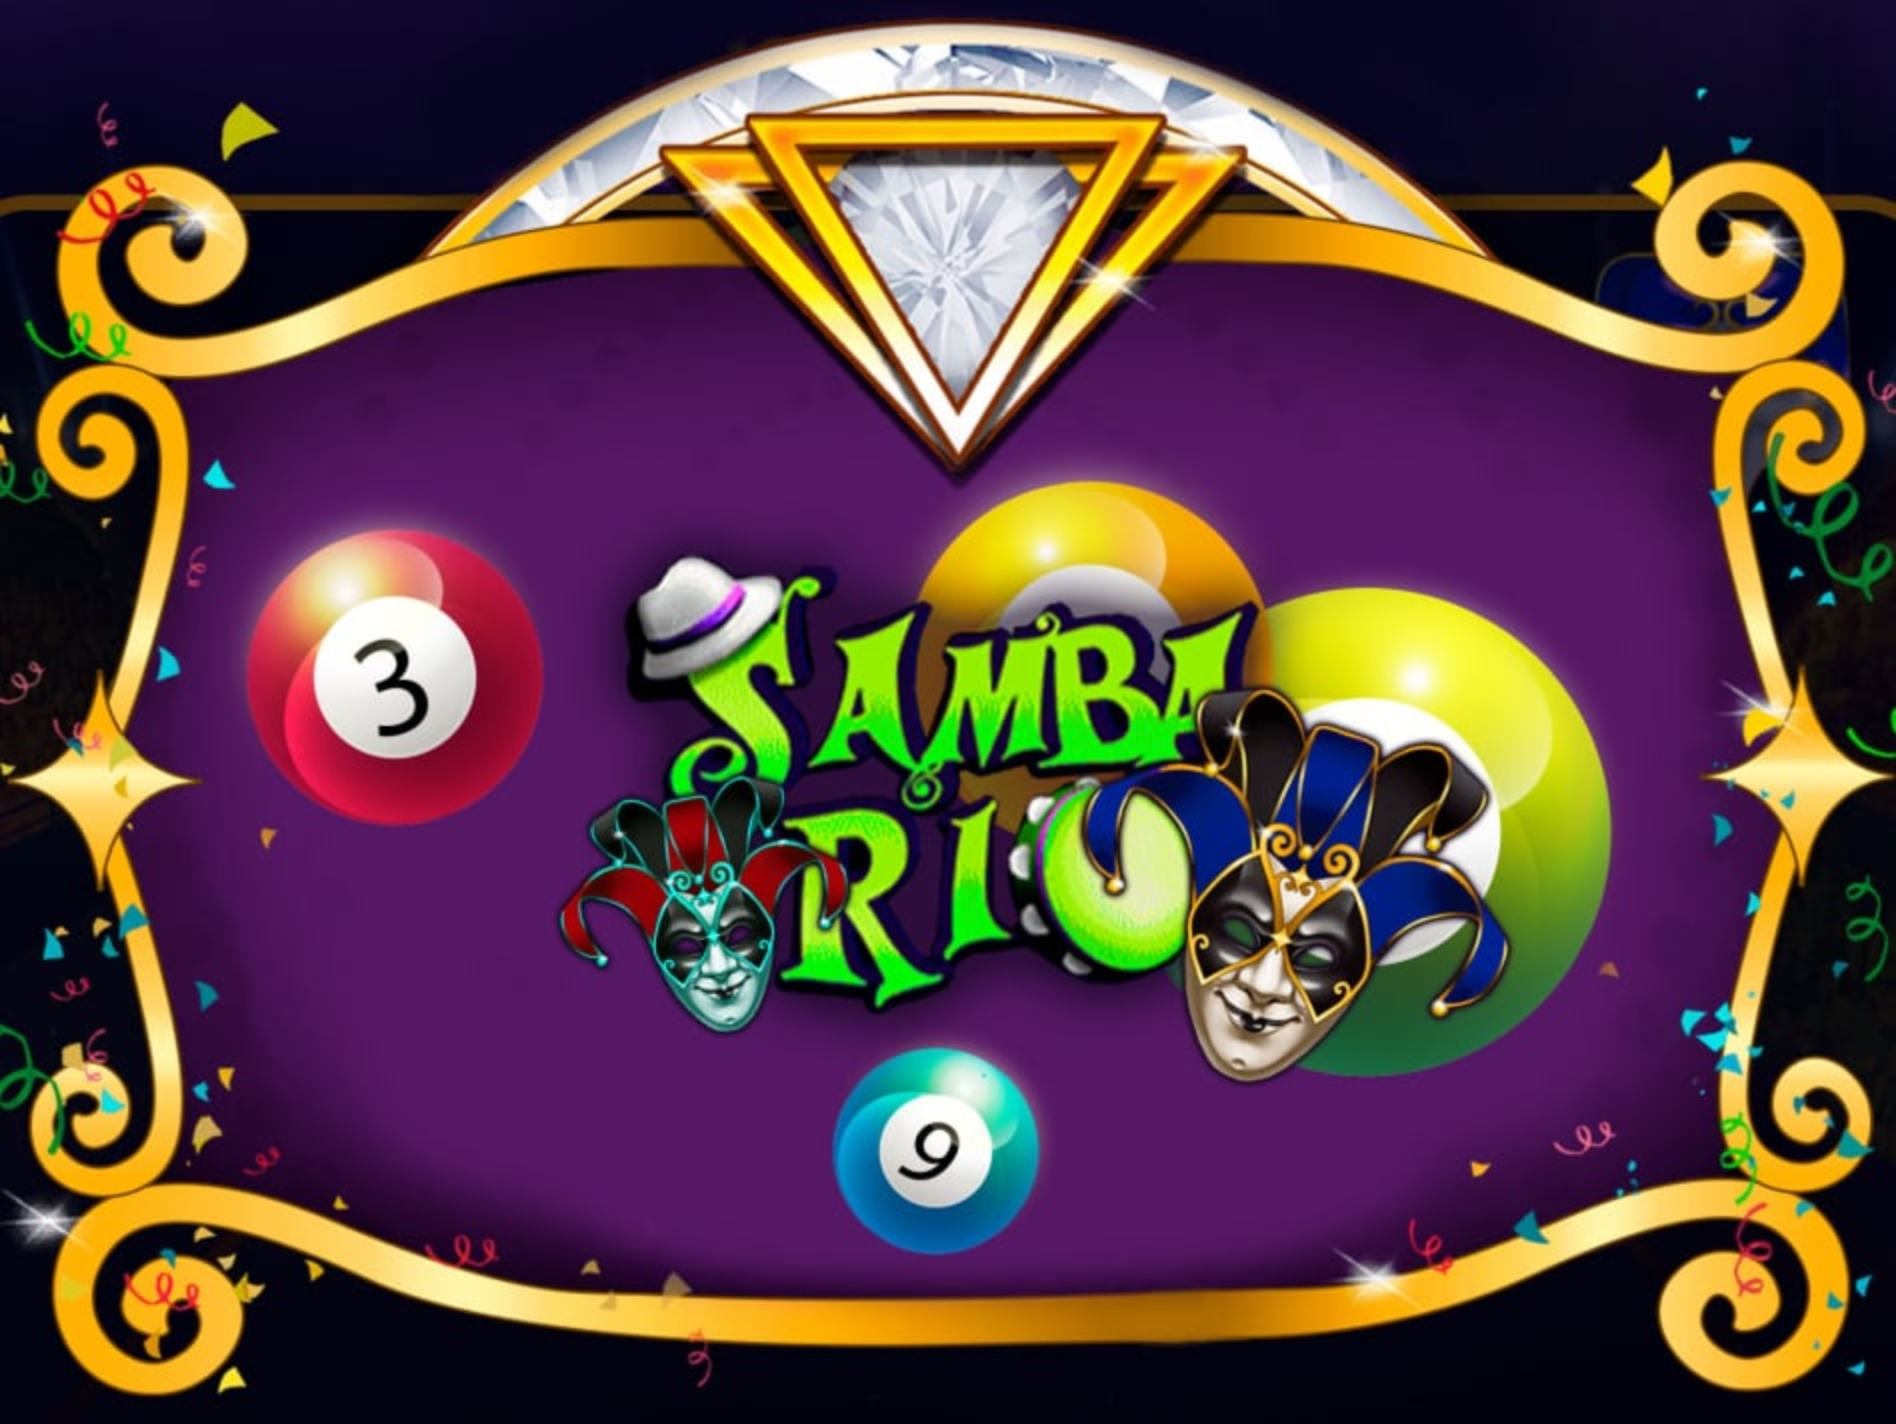 Se Bingo Samba Rio Online Slot Demo Game, Caleta Gaming